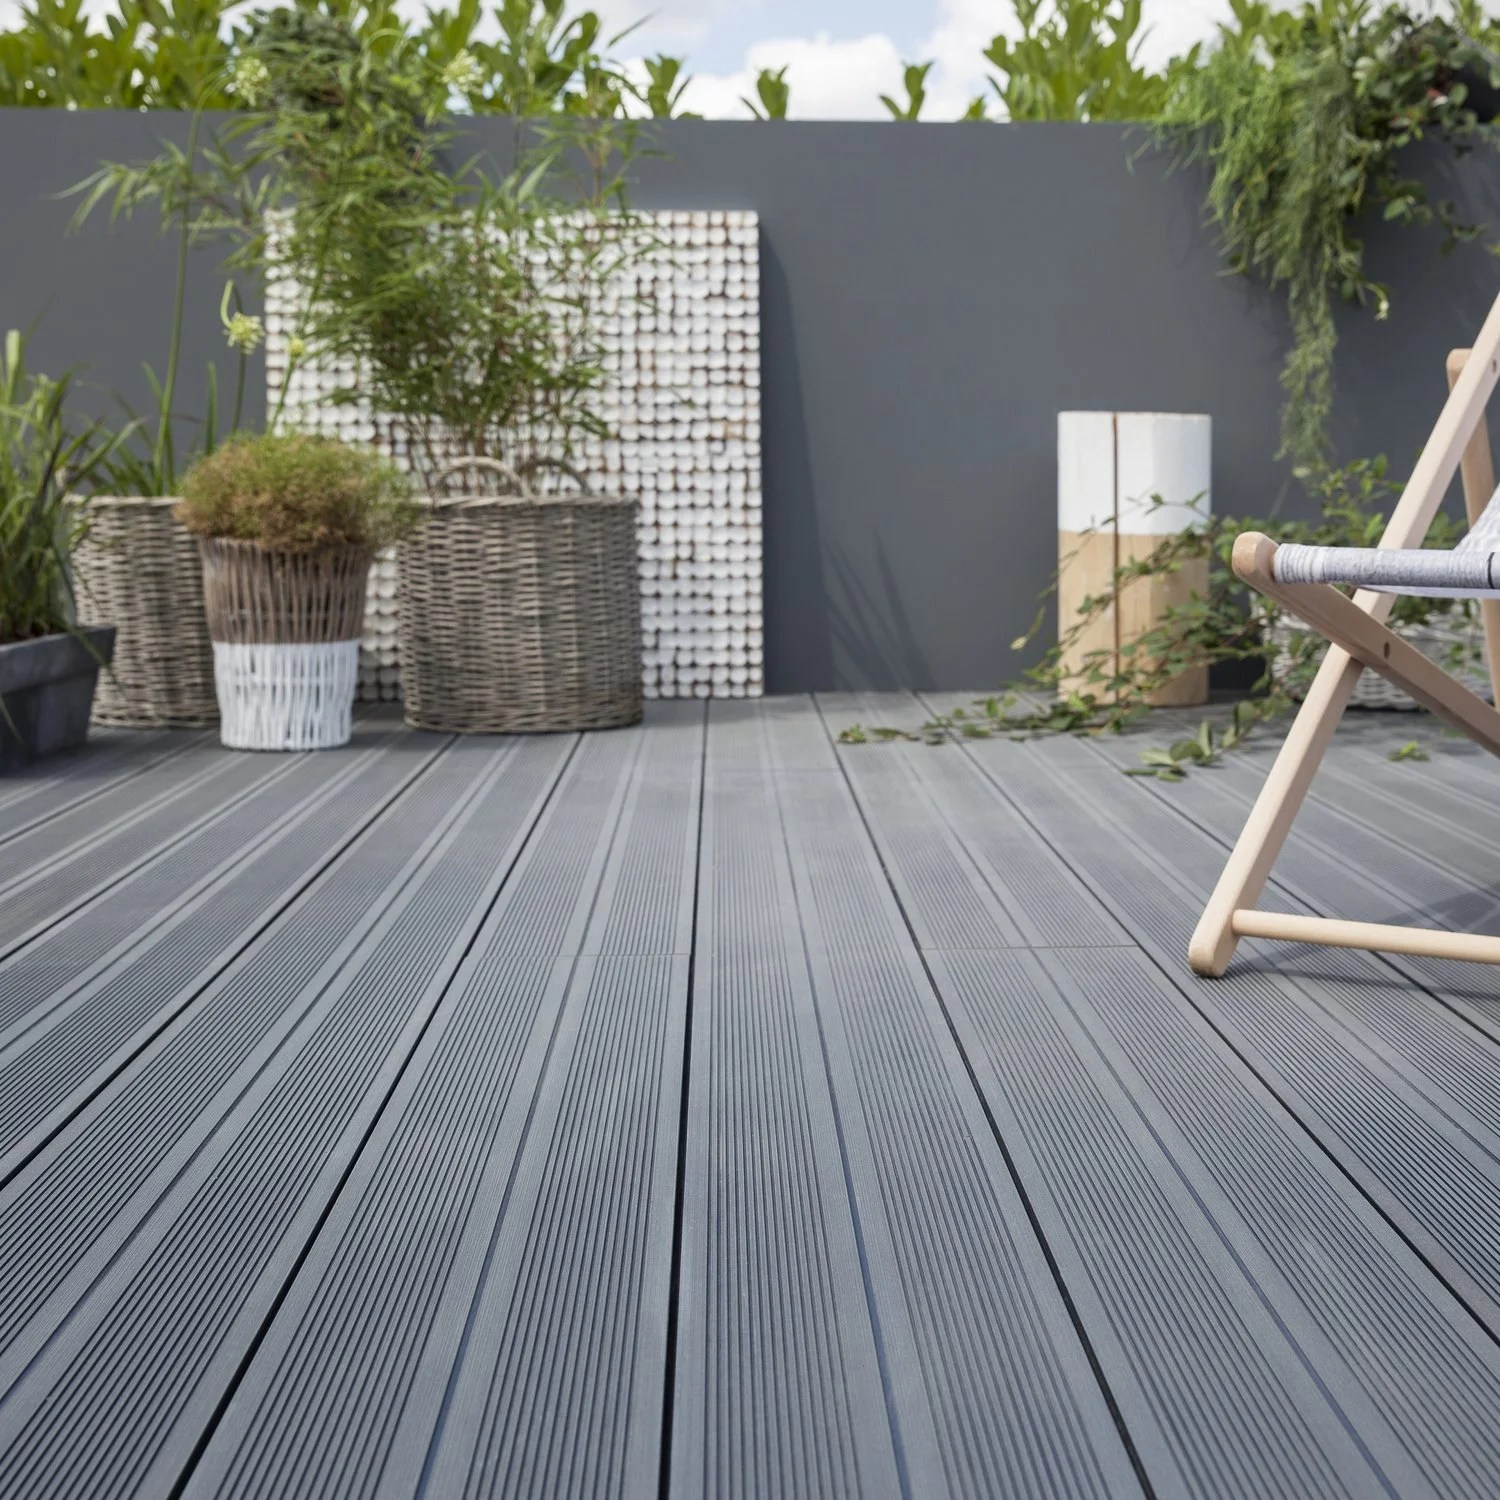 Destockage Lame Terrasse La Fantaisie Des Terrasses Composite Leroy Merlin